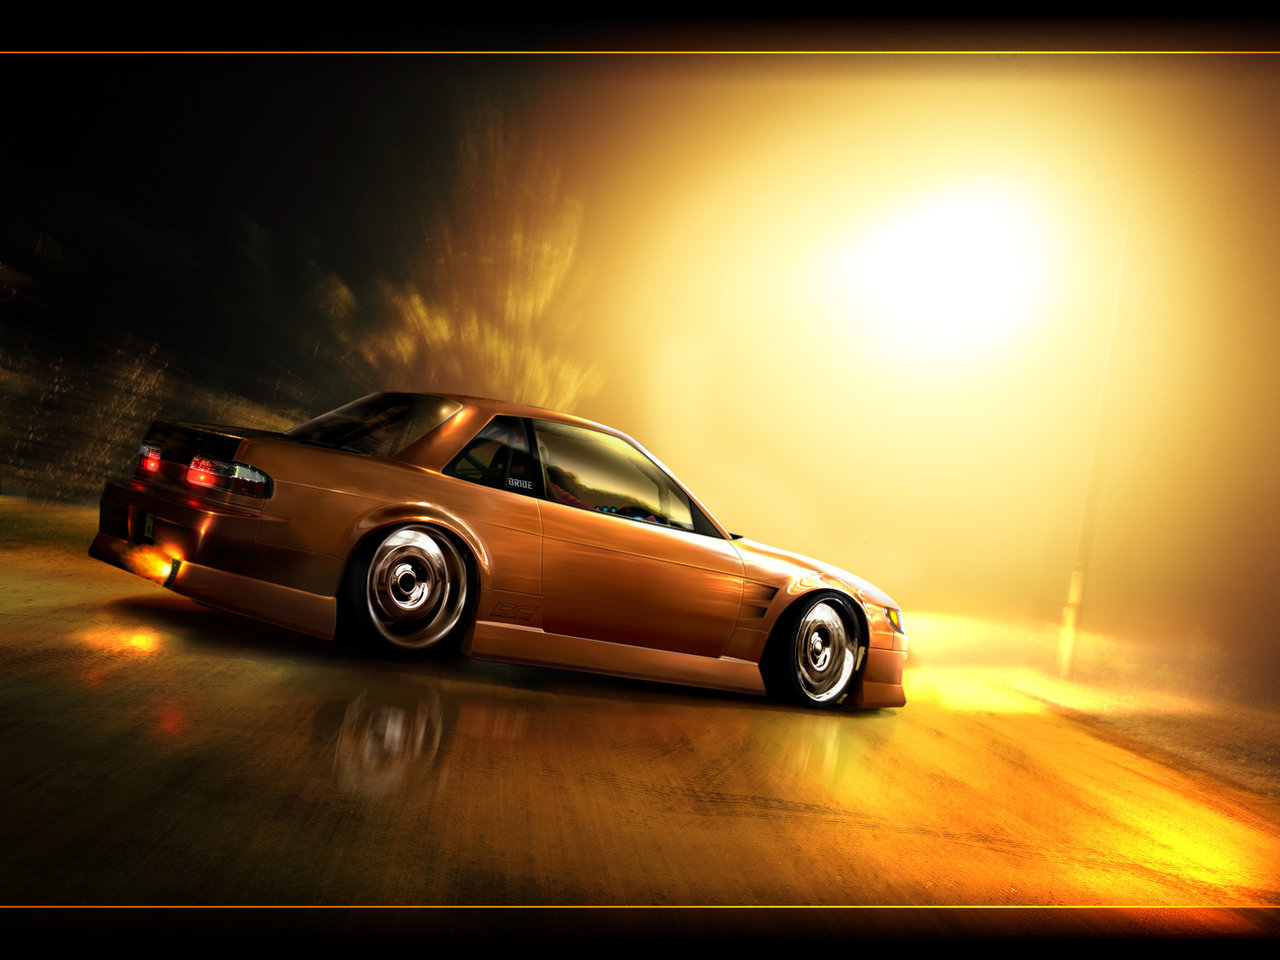 cars Nissan Silvia S13 HD Wallpaper